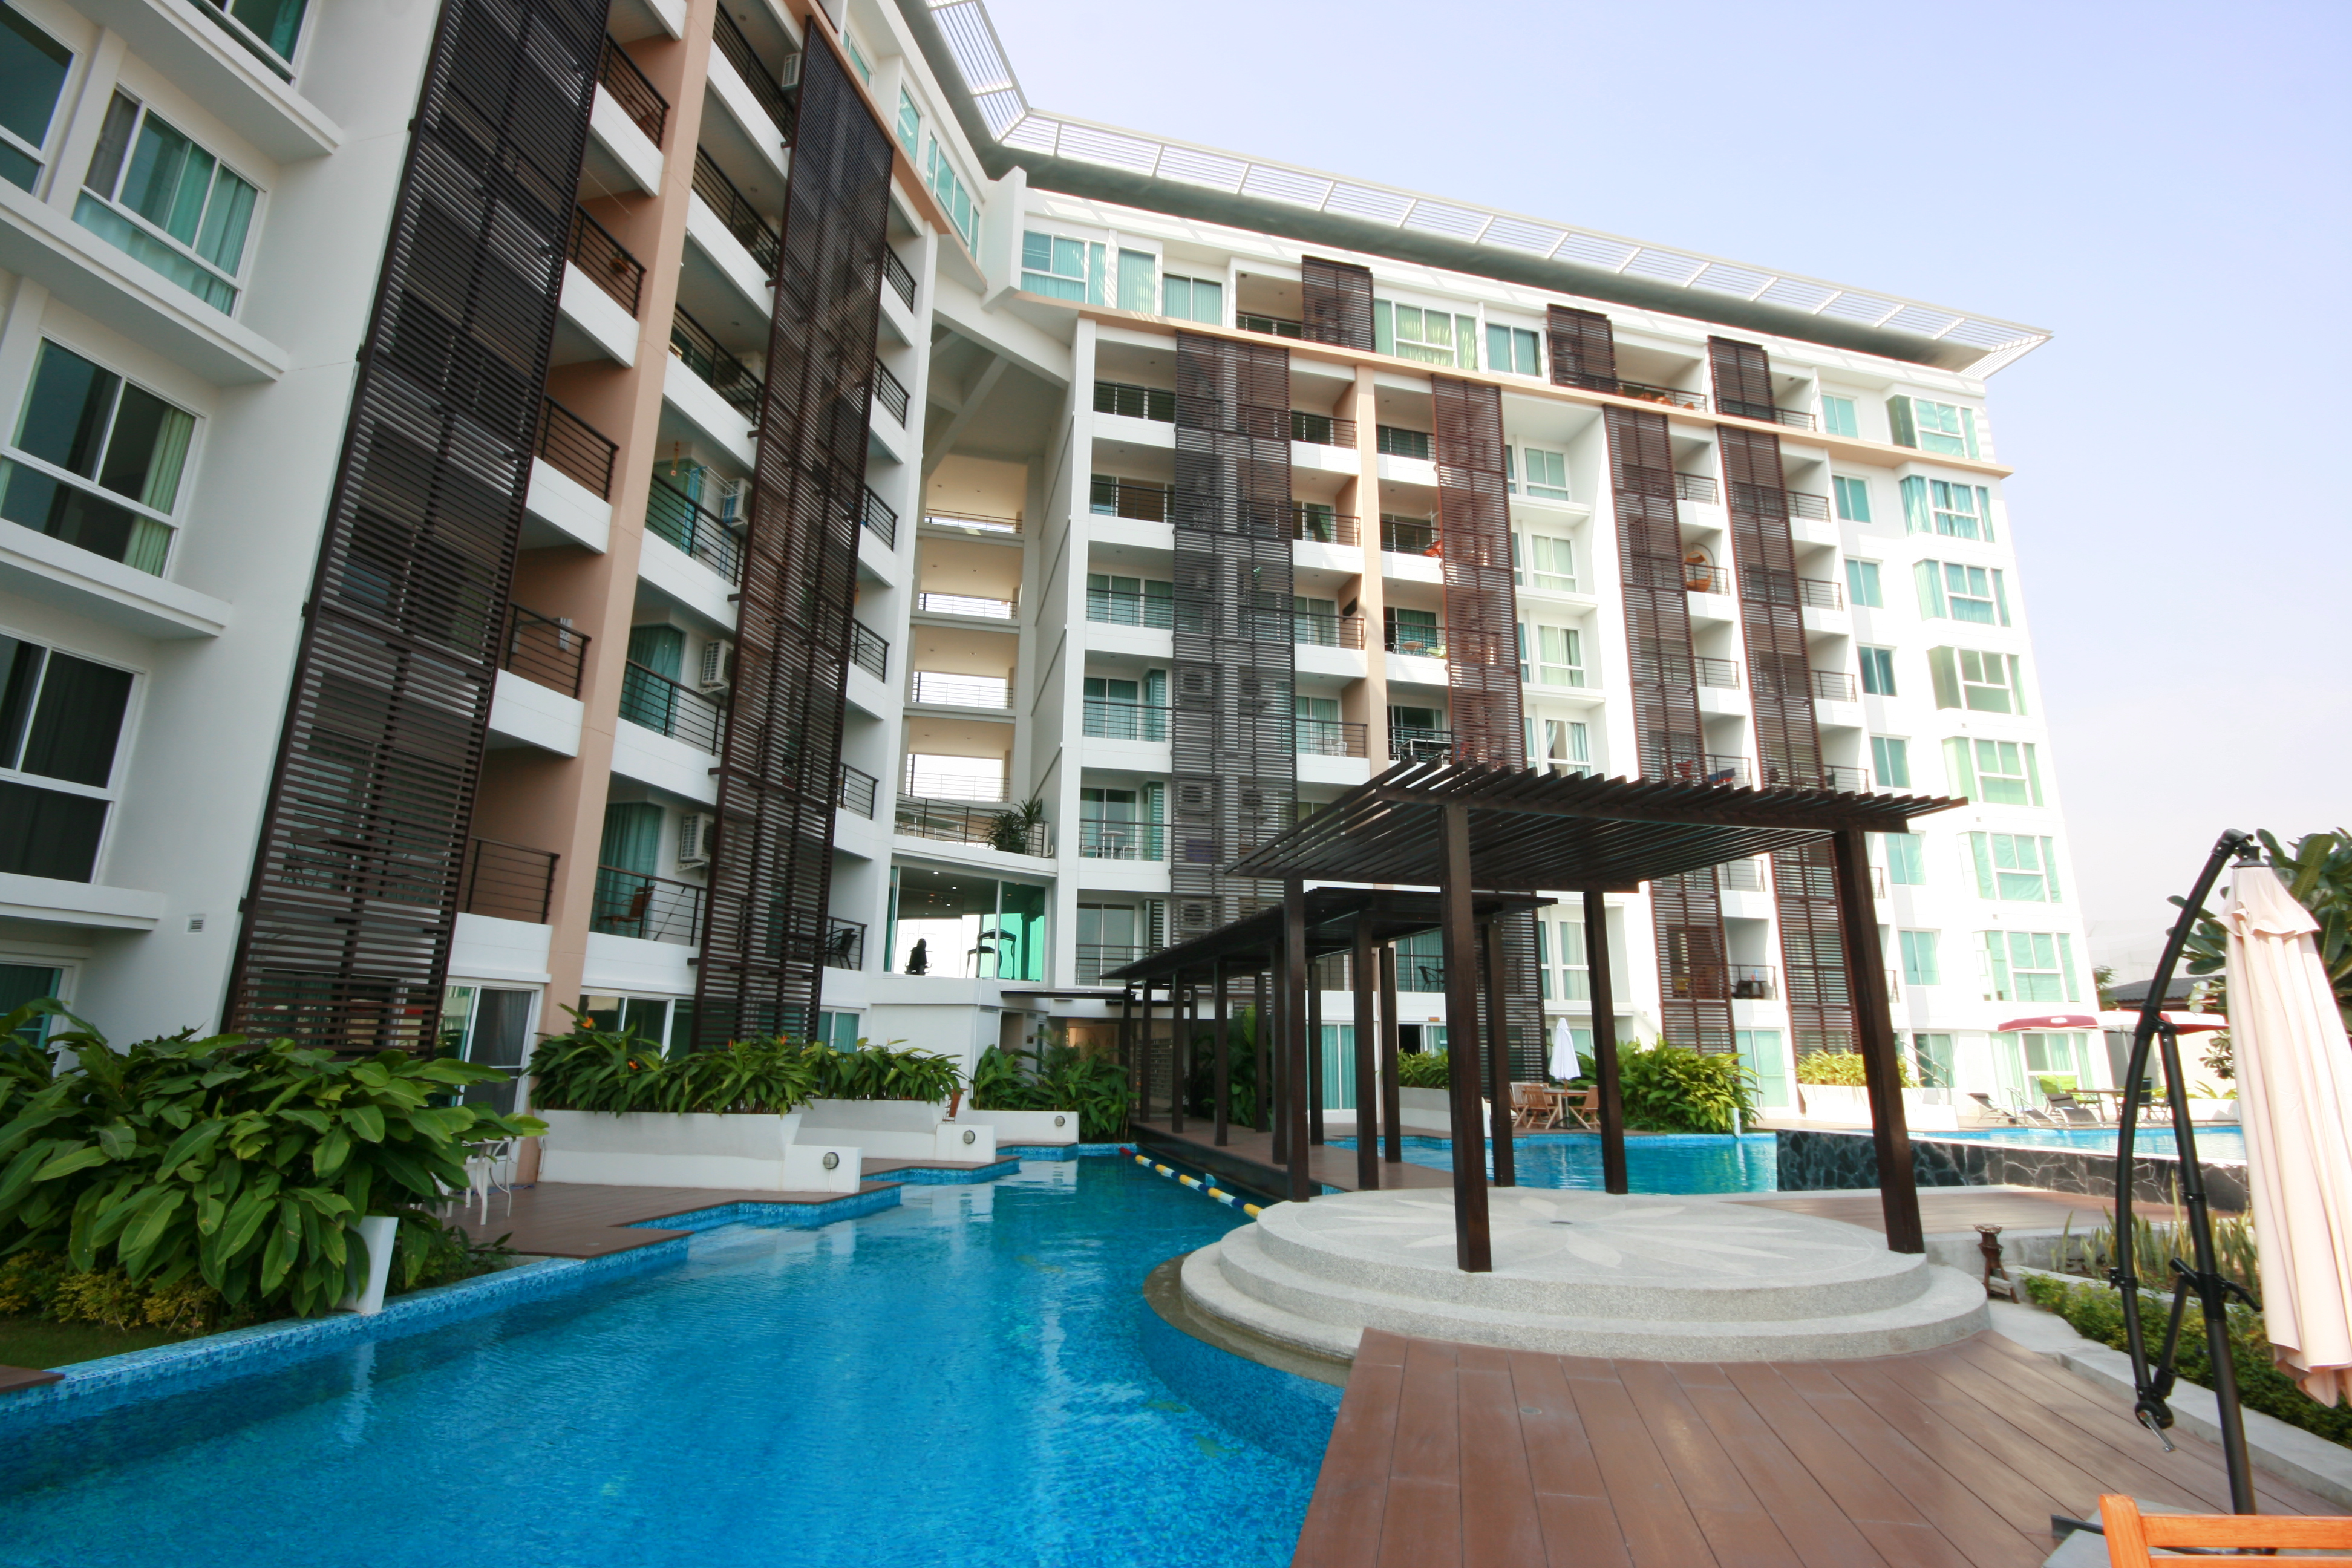 Studio Room at Tira Tiraa Condo in town for Sale